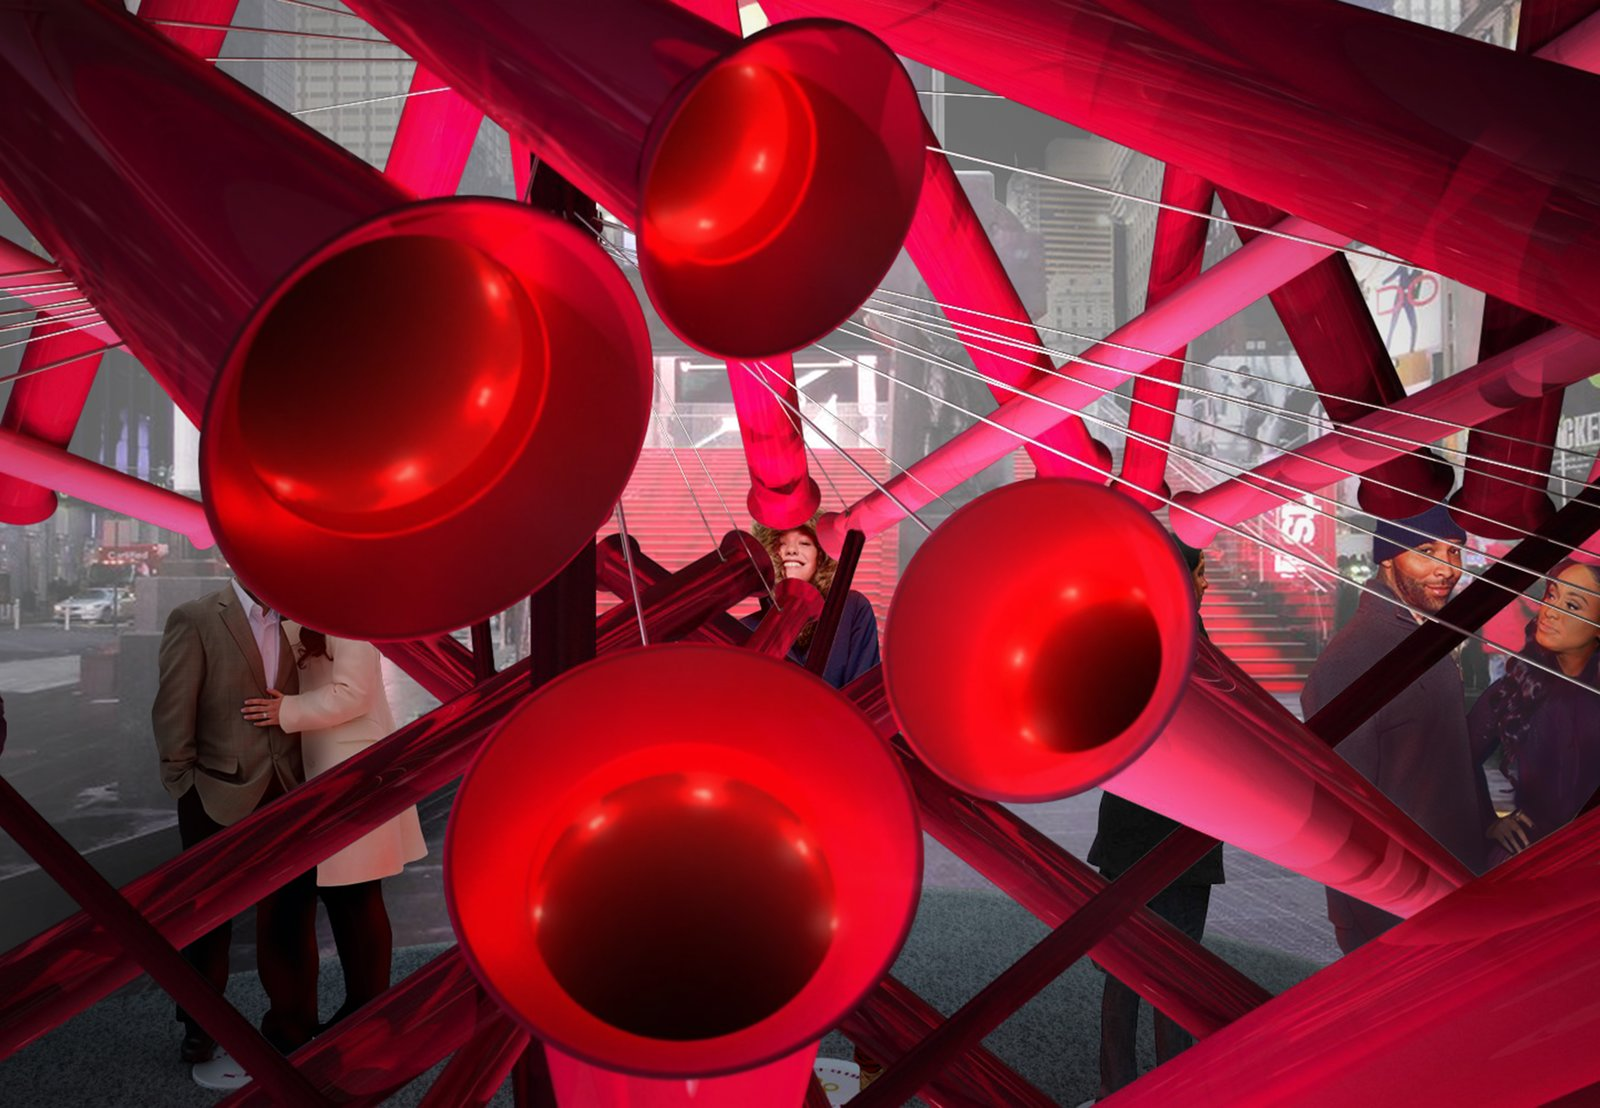 The tubes are actually periscopes that connect the viewer with up to four ideal astrological matches. Photo courtesy of Young Projects.  Photo 2 of 2 in Brooklyn Design Studio Wins Annual Times Square Heart Competition